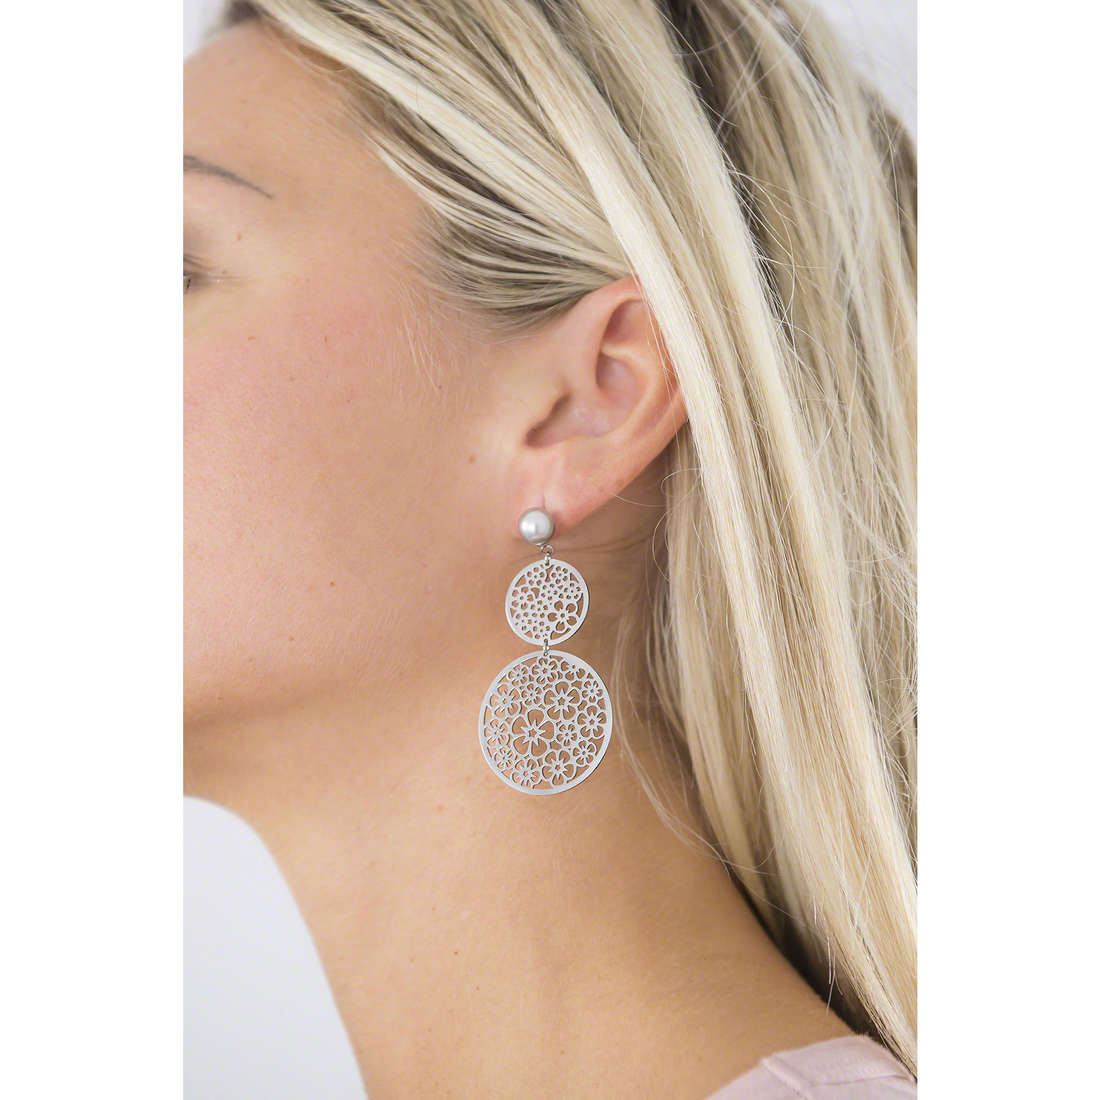 Brosway boucles d'oreille Mademoiselle femme BIS22 indosso